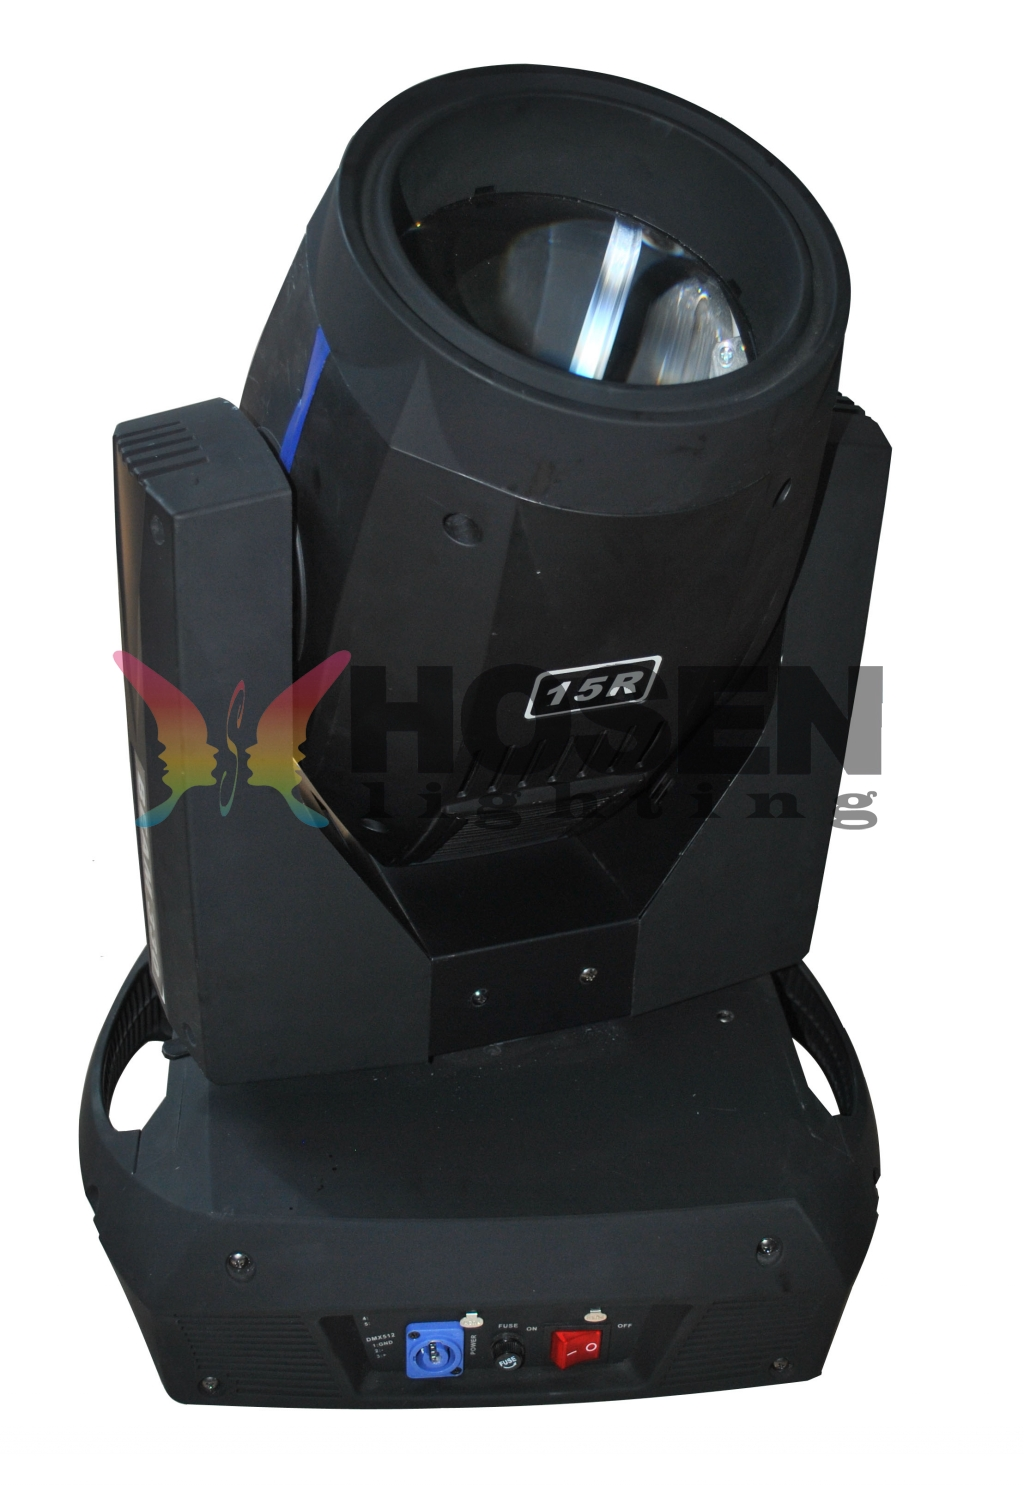 15R 330W beam moving head light HS-MB330B